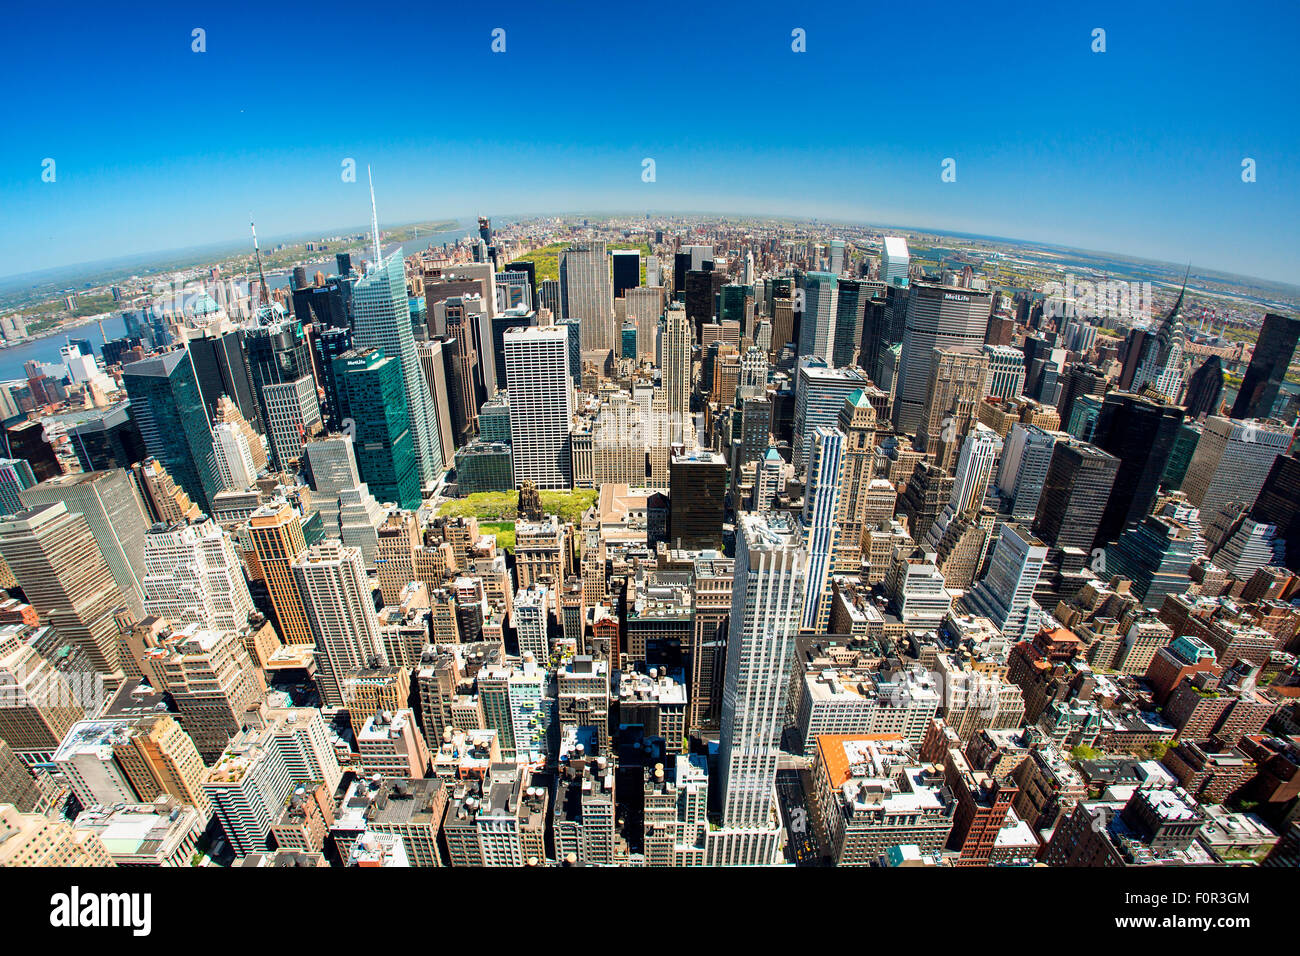 New York City Skyline Photo Stock